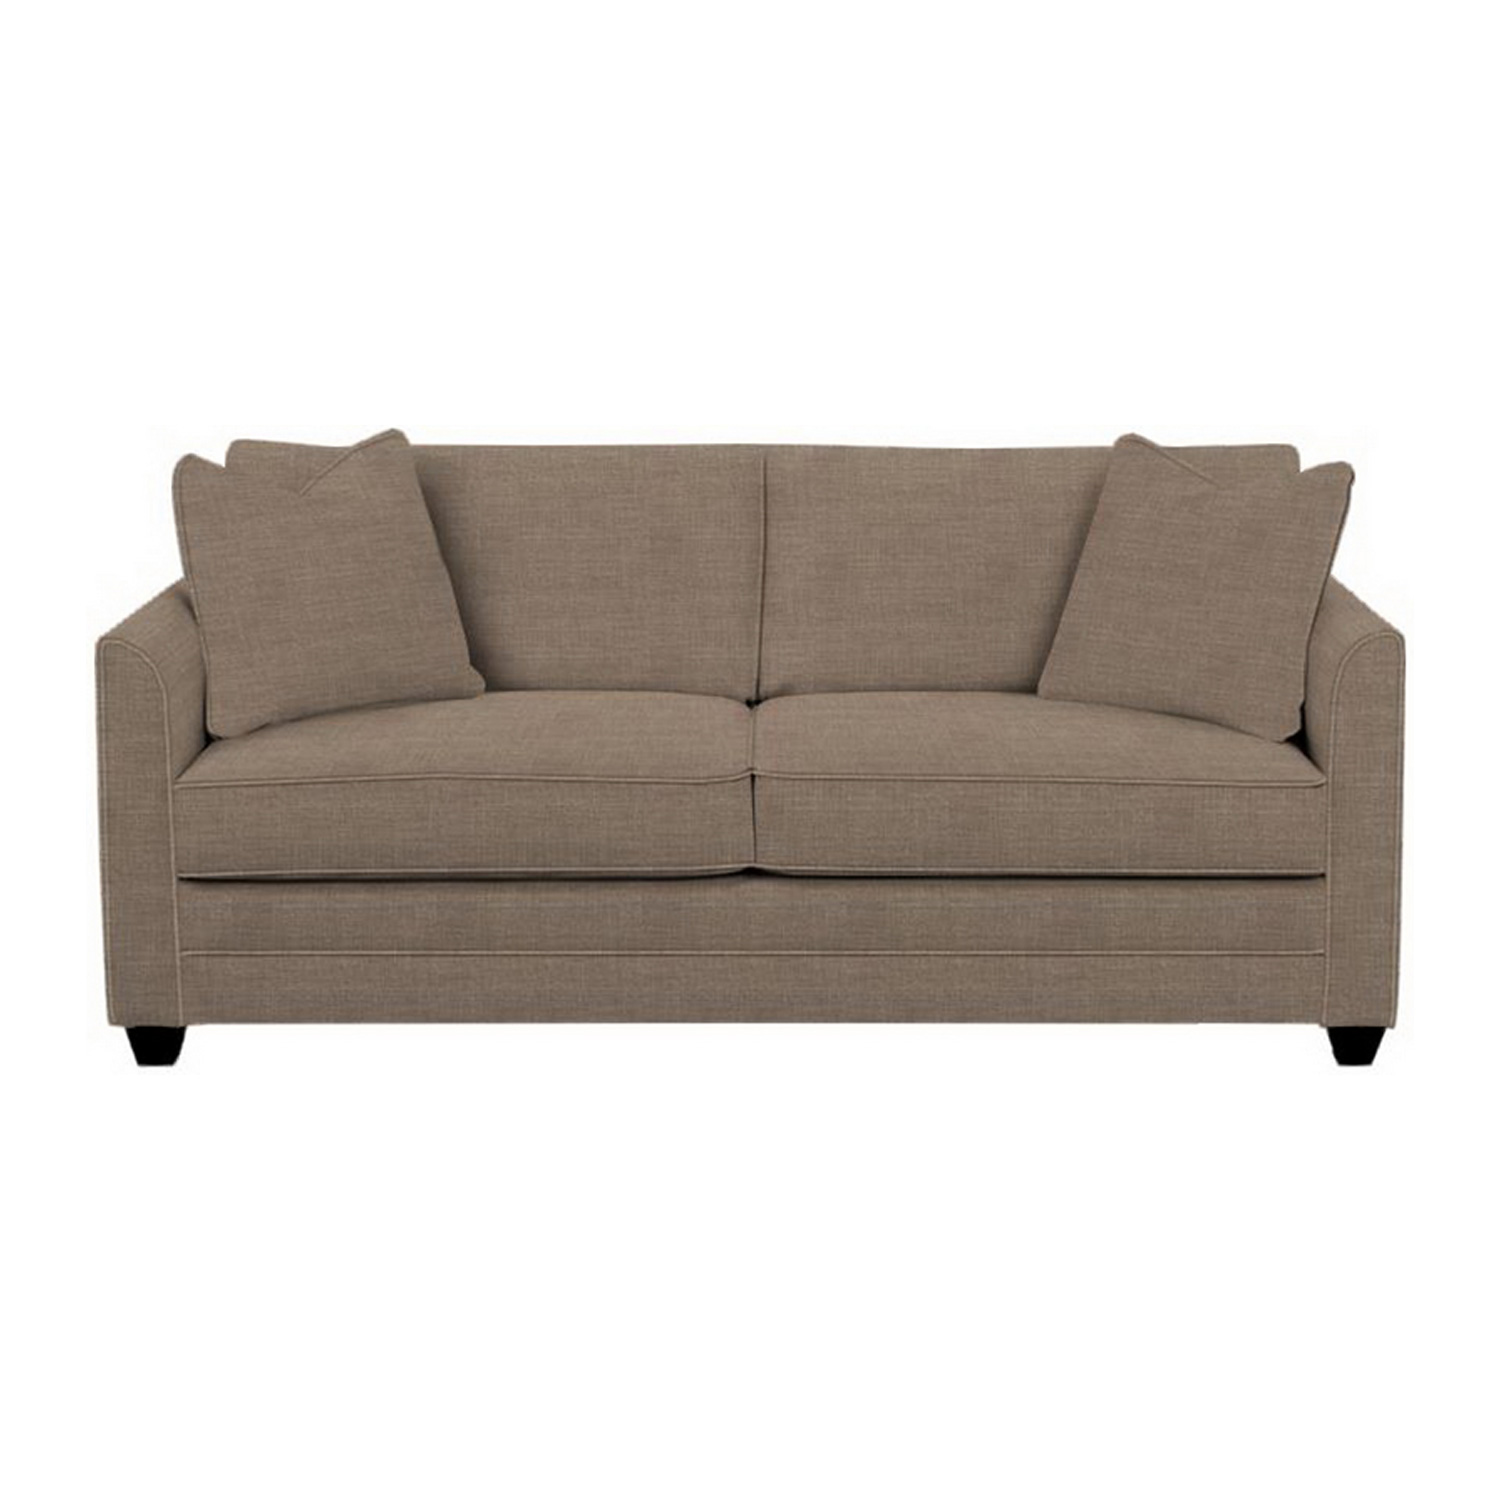 MIRANDA SLEEPER SOFA